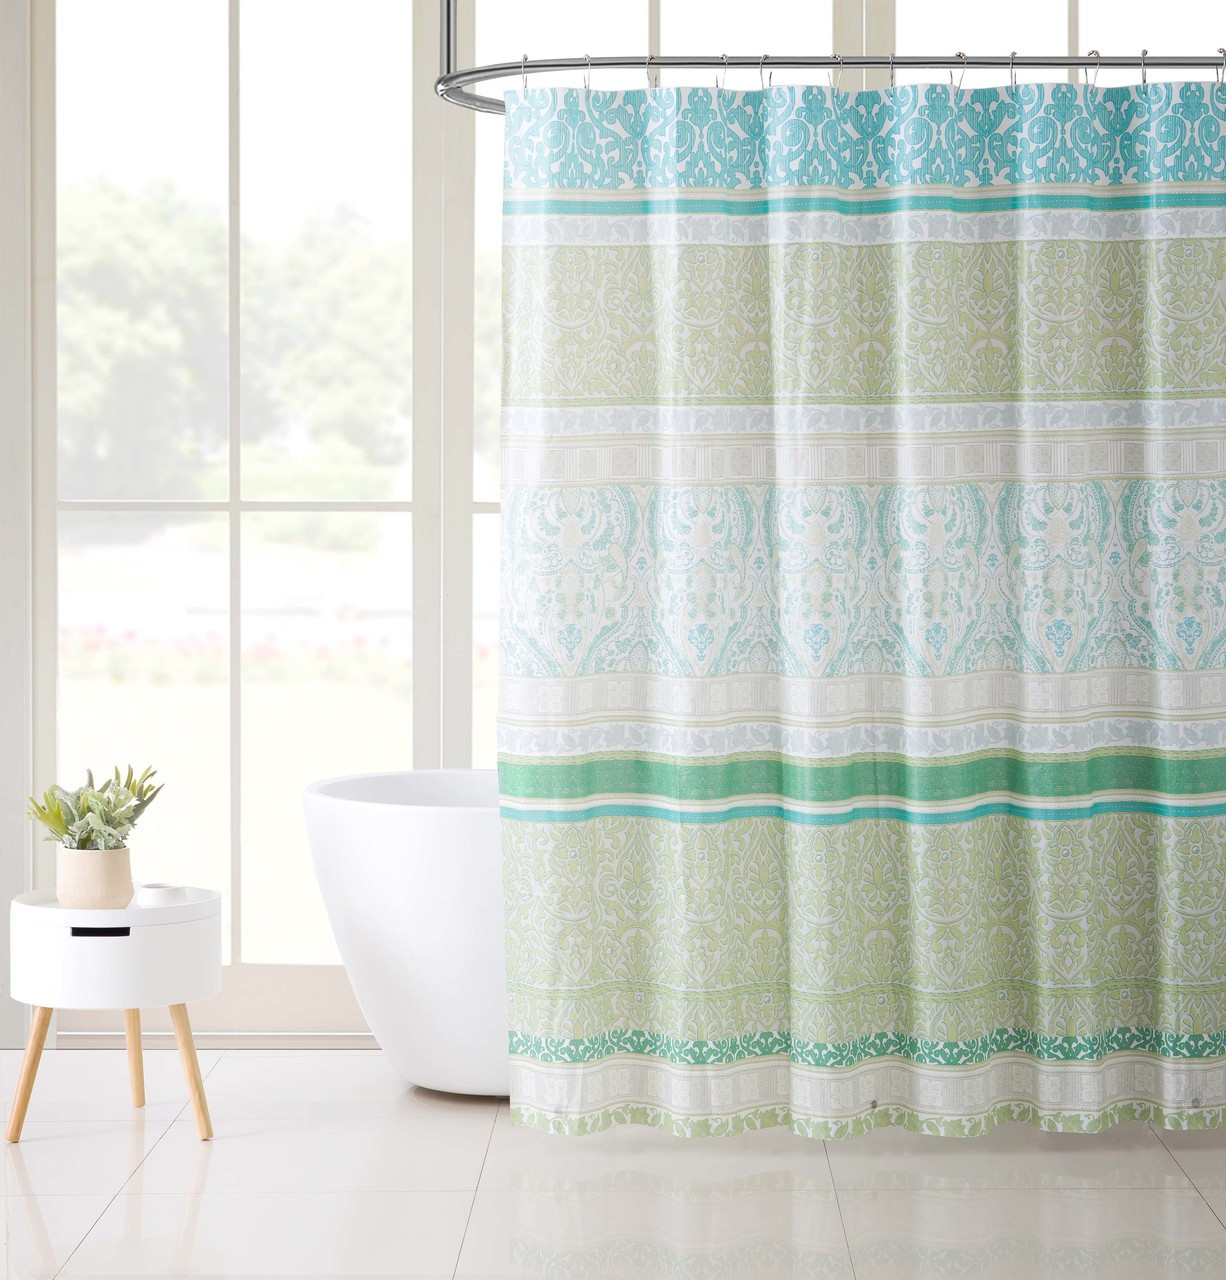 Blue And Green PEVA Shower Curtain Liner Odorless PVC Chlorine